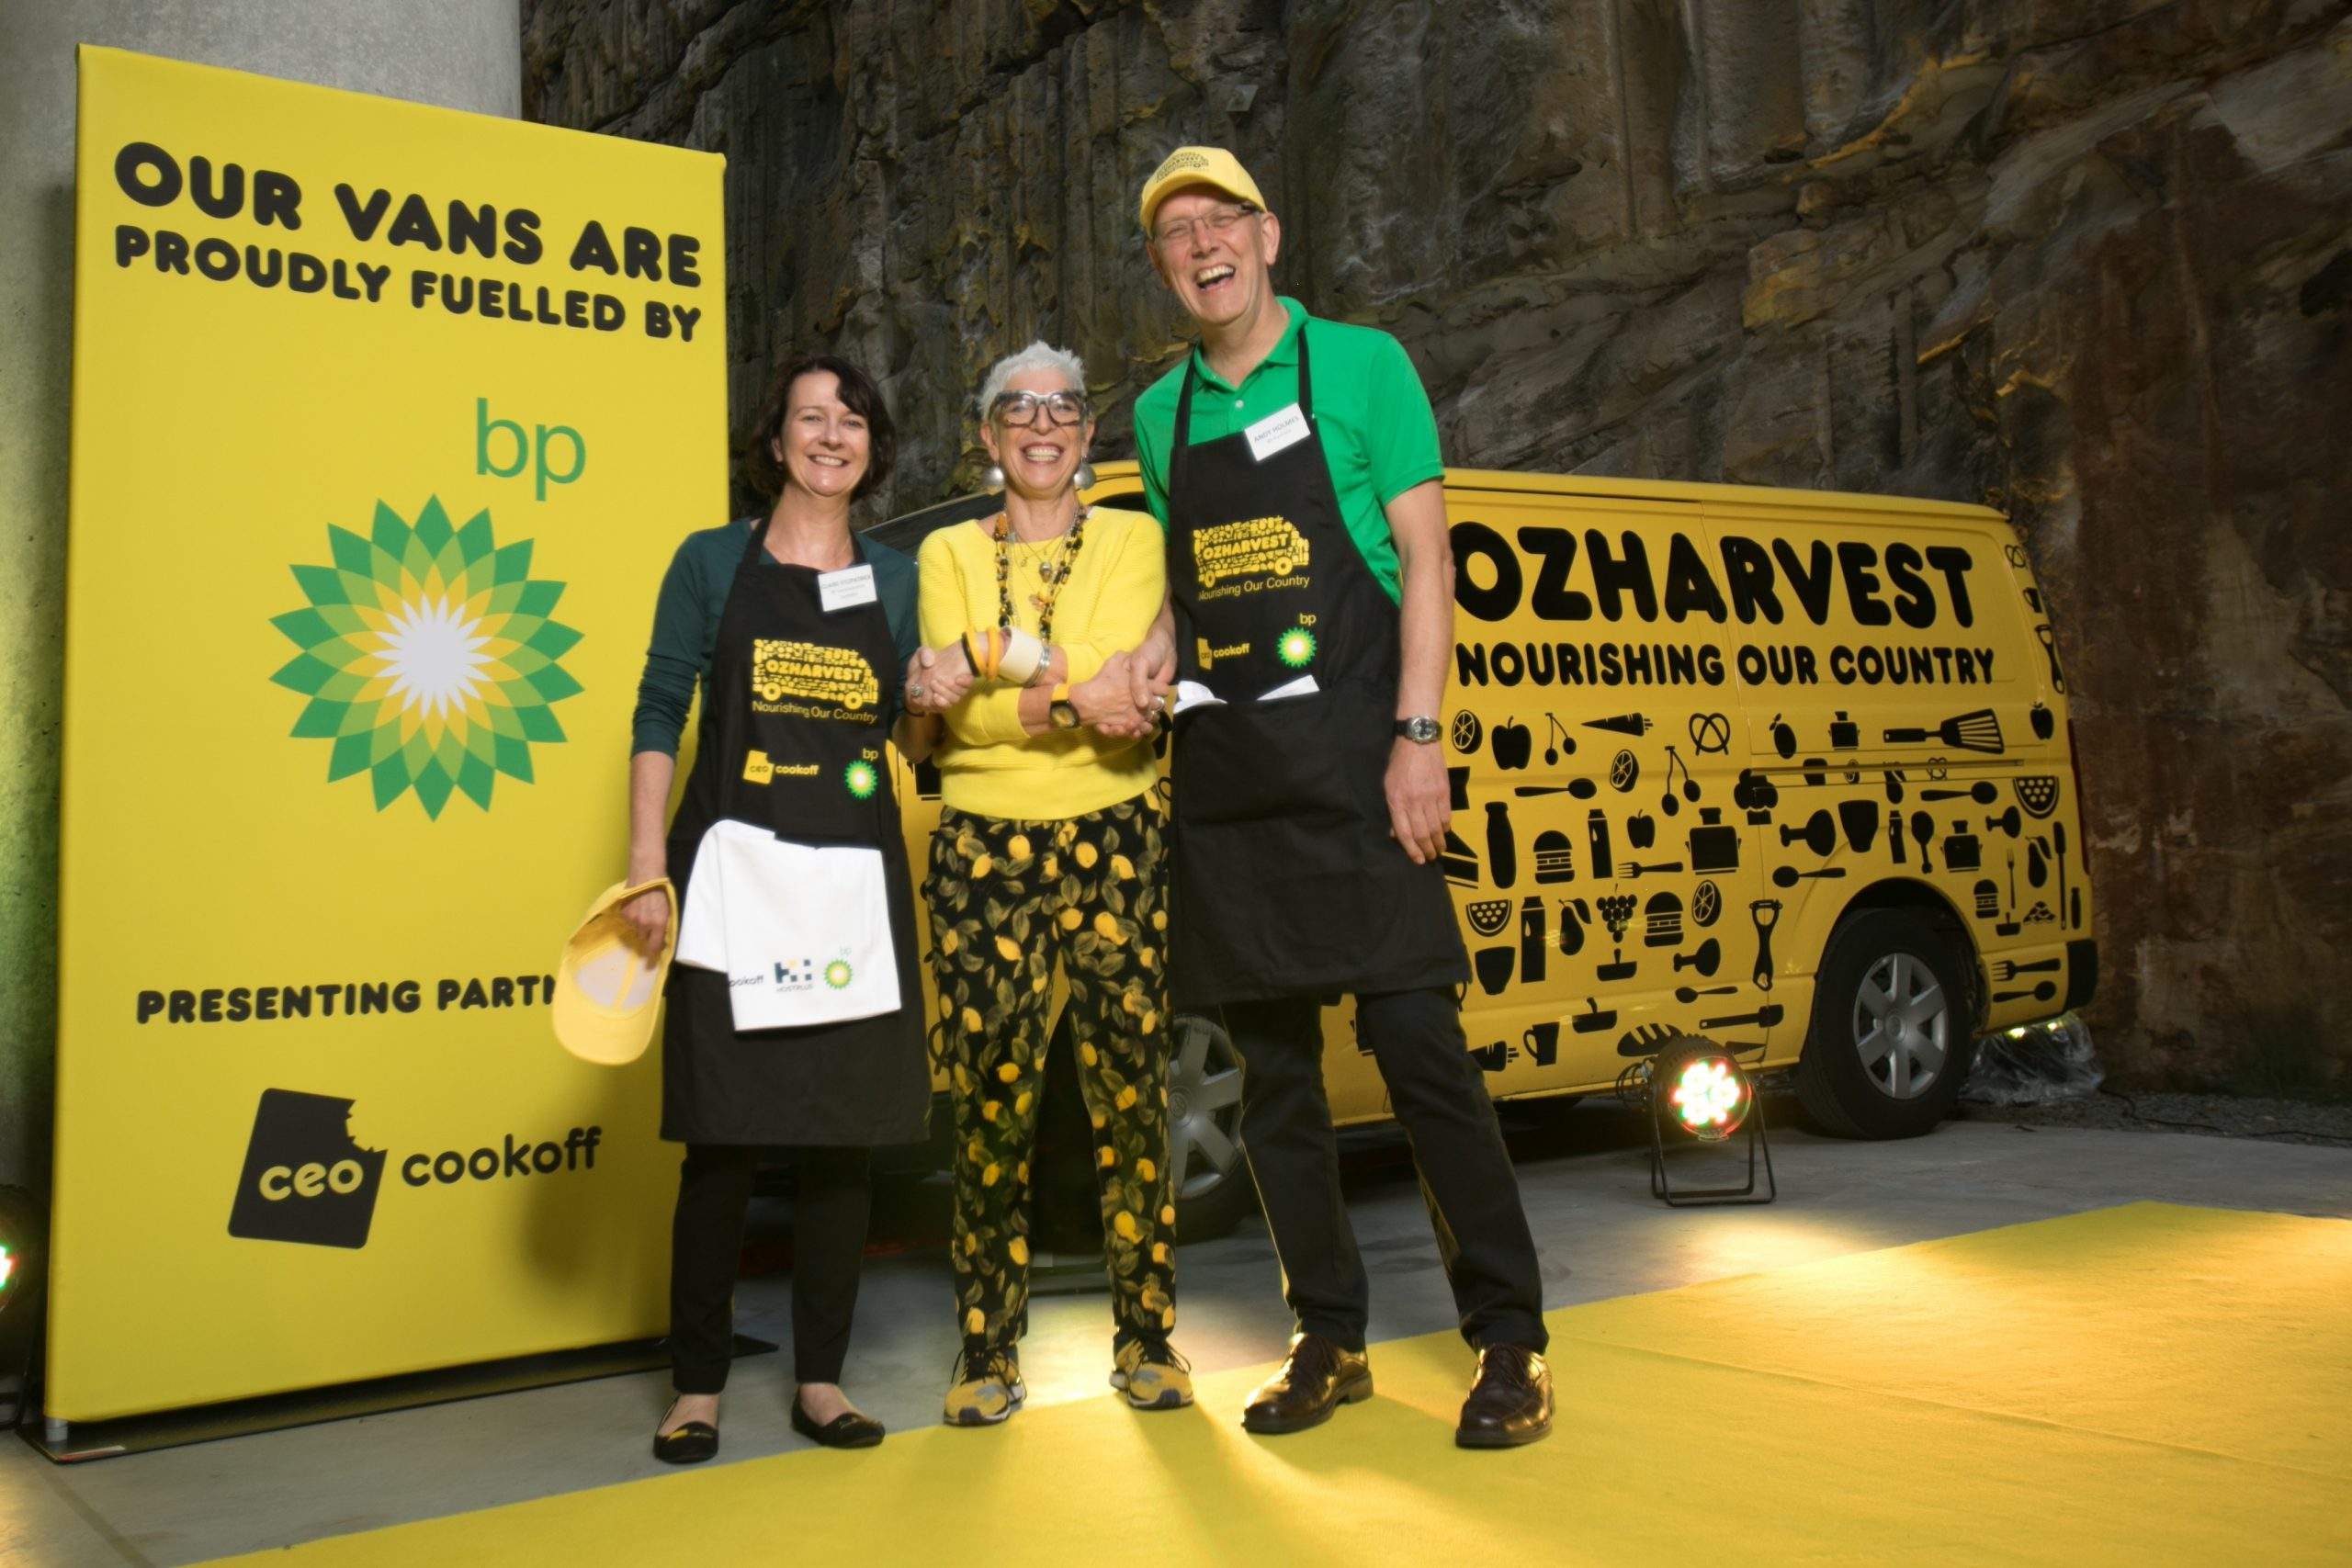 BP and OzHarvest announcing our corporate partnership. Ronni shaking hands with BP staff members